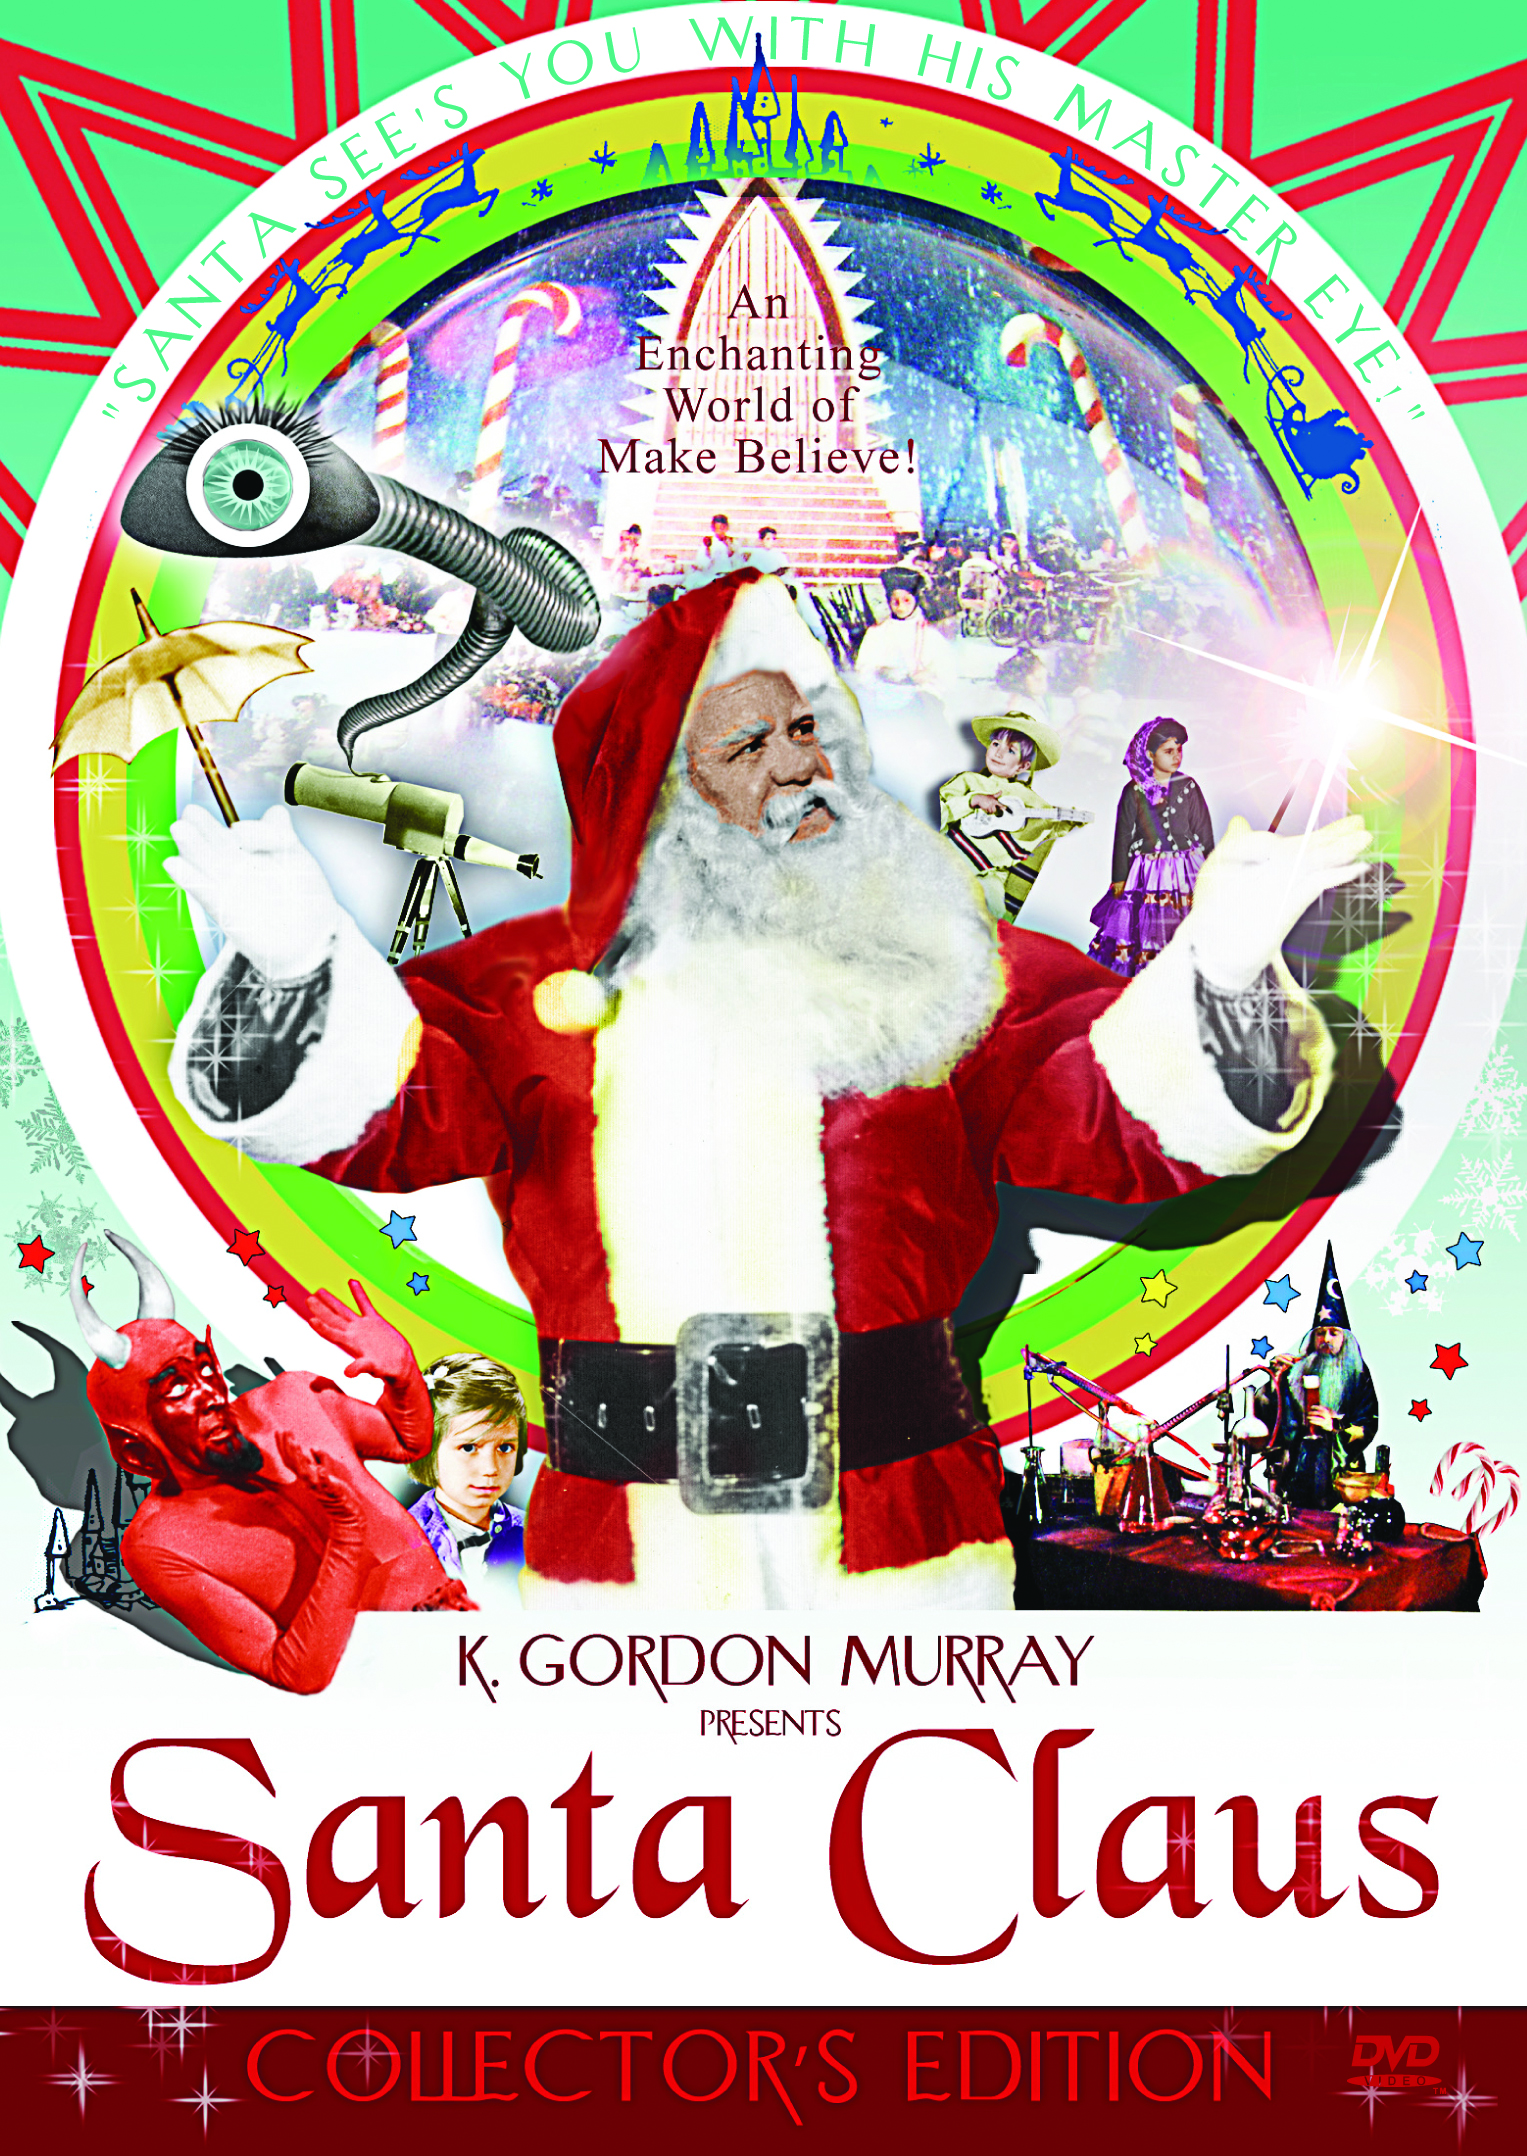 From The Desk Of Santa Claus An enchanting world of